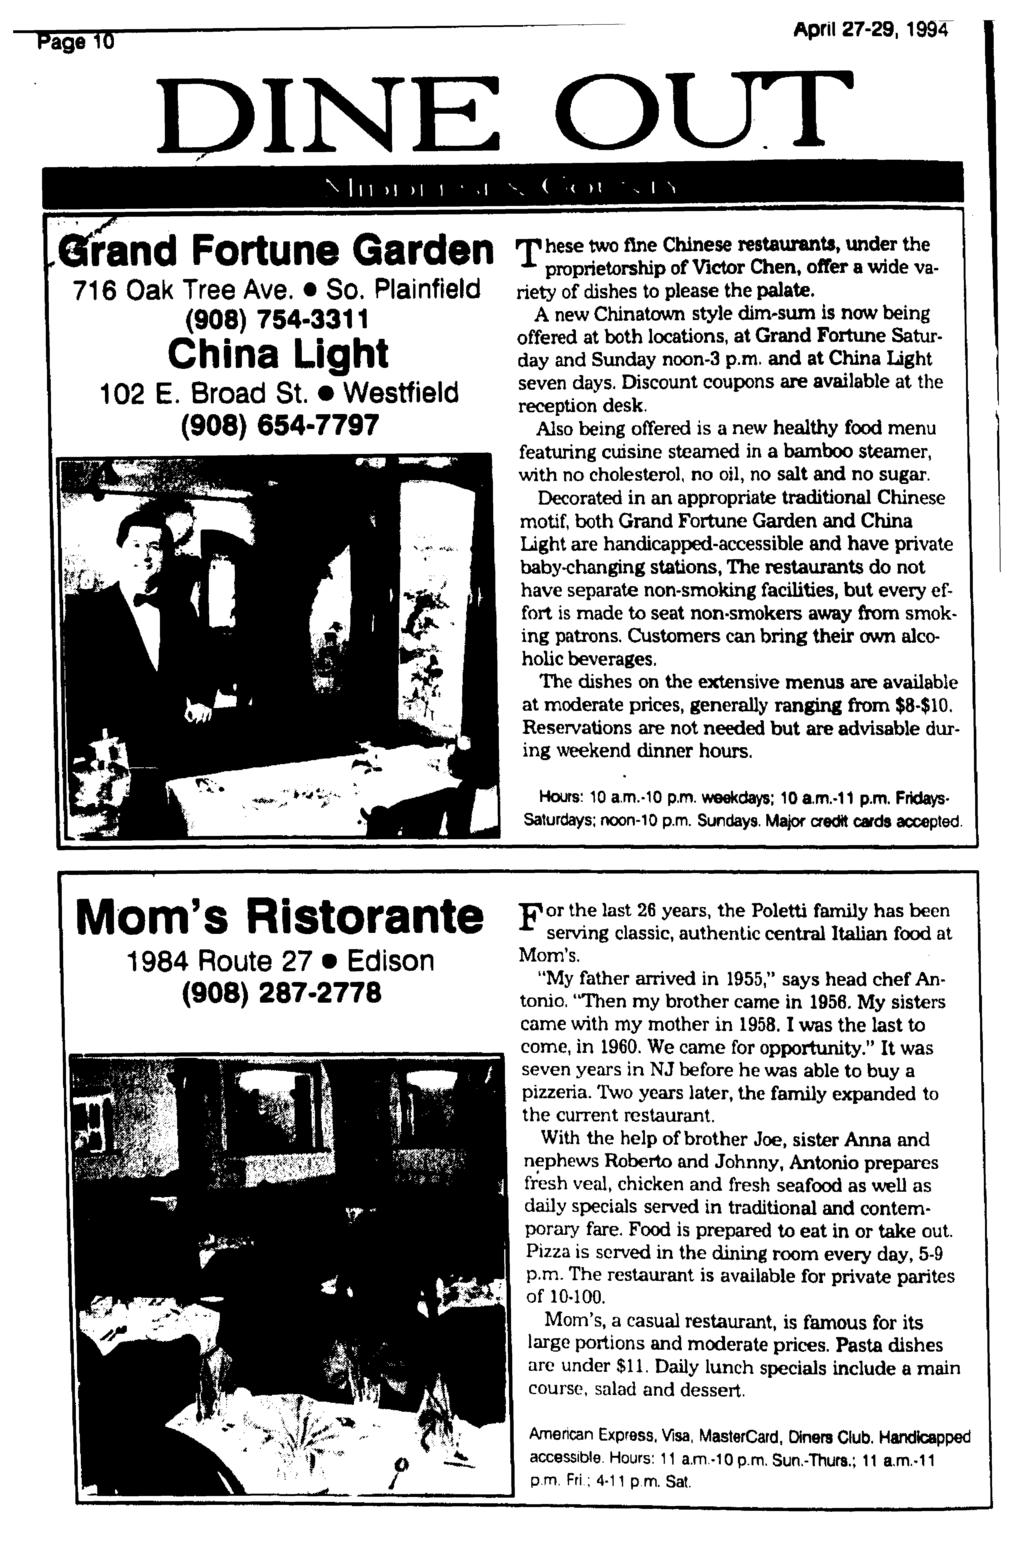 April 27-29,1994 DINE OUT Grand Fortune Garden 716 Oak Tree Ave. So. Plainfield (908) 754-3311 China Light 102 E. Broad St.